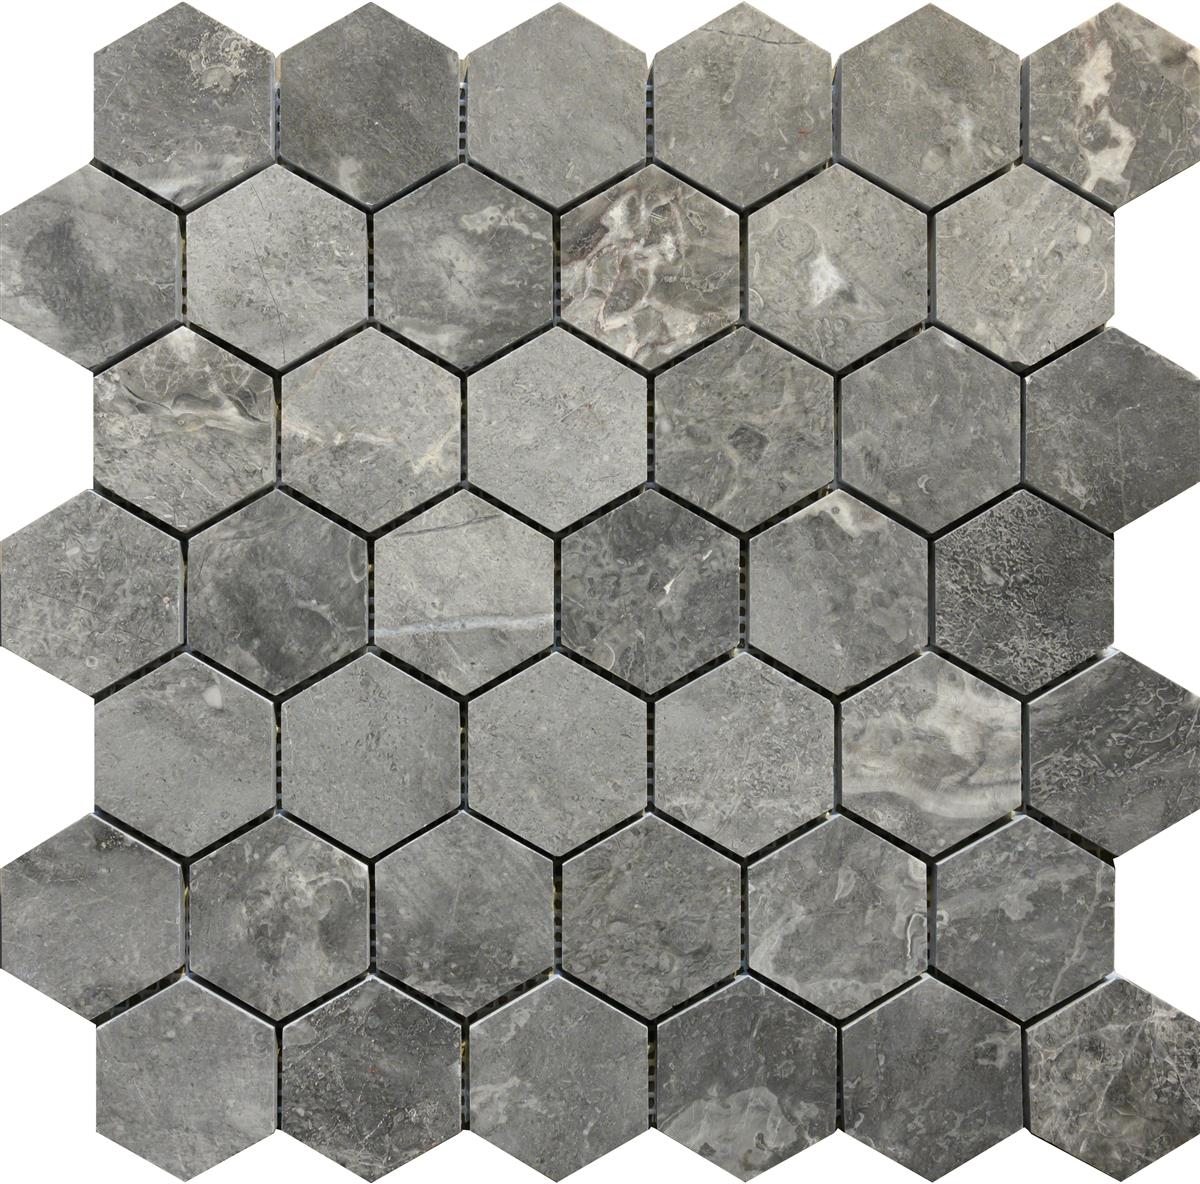 Roma Grey Marmor Hexagon 4,8x4,8x1 cm